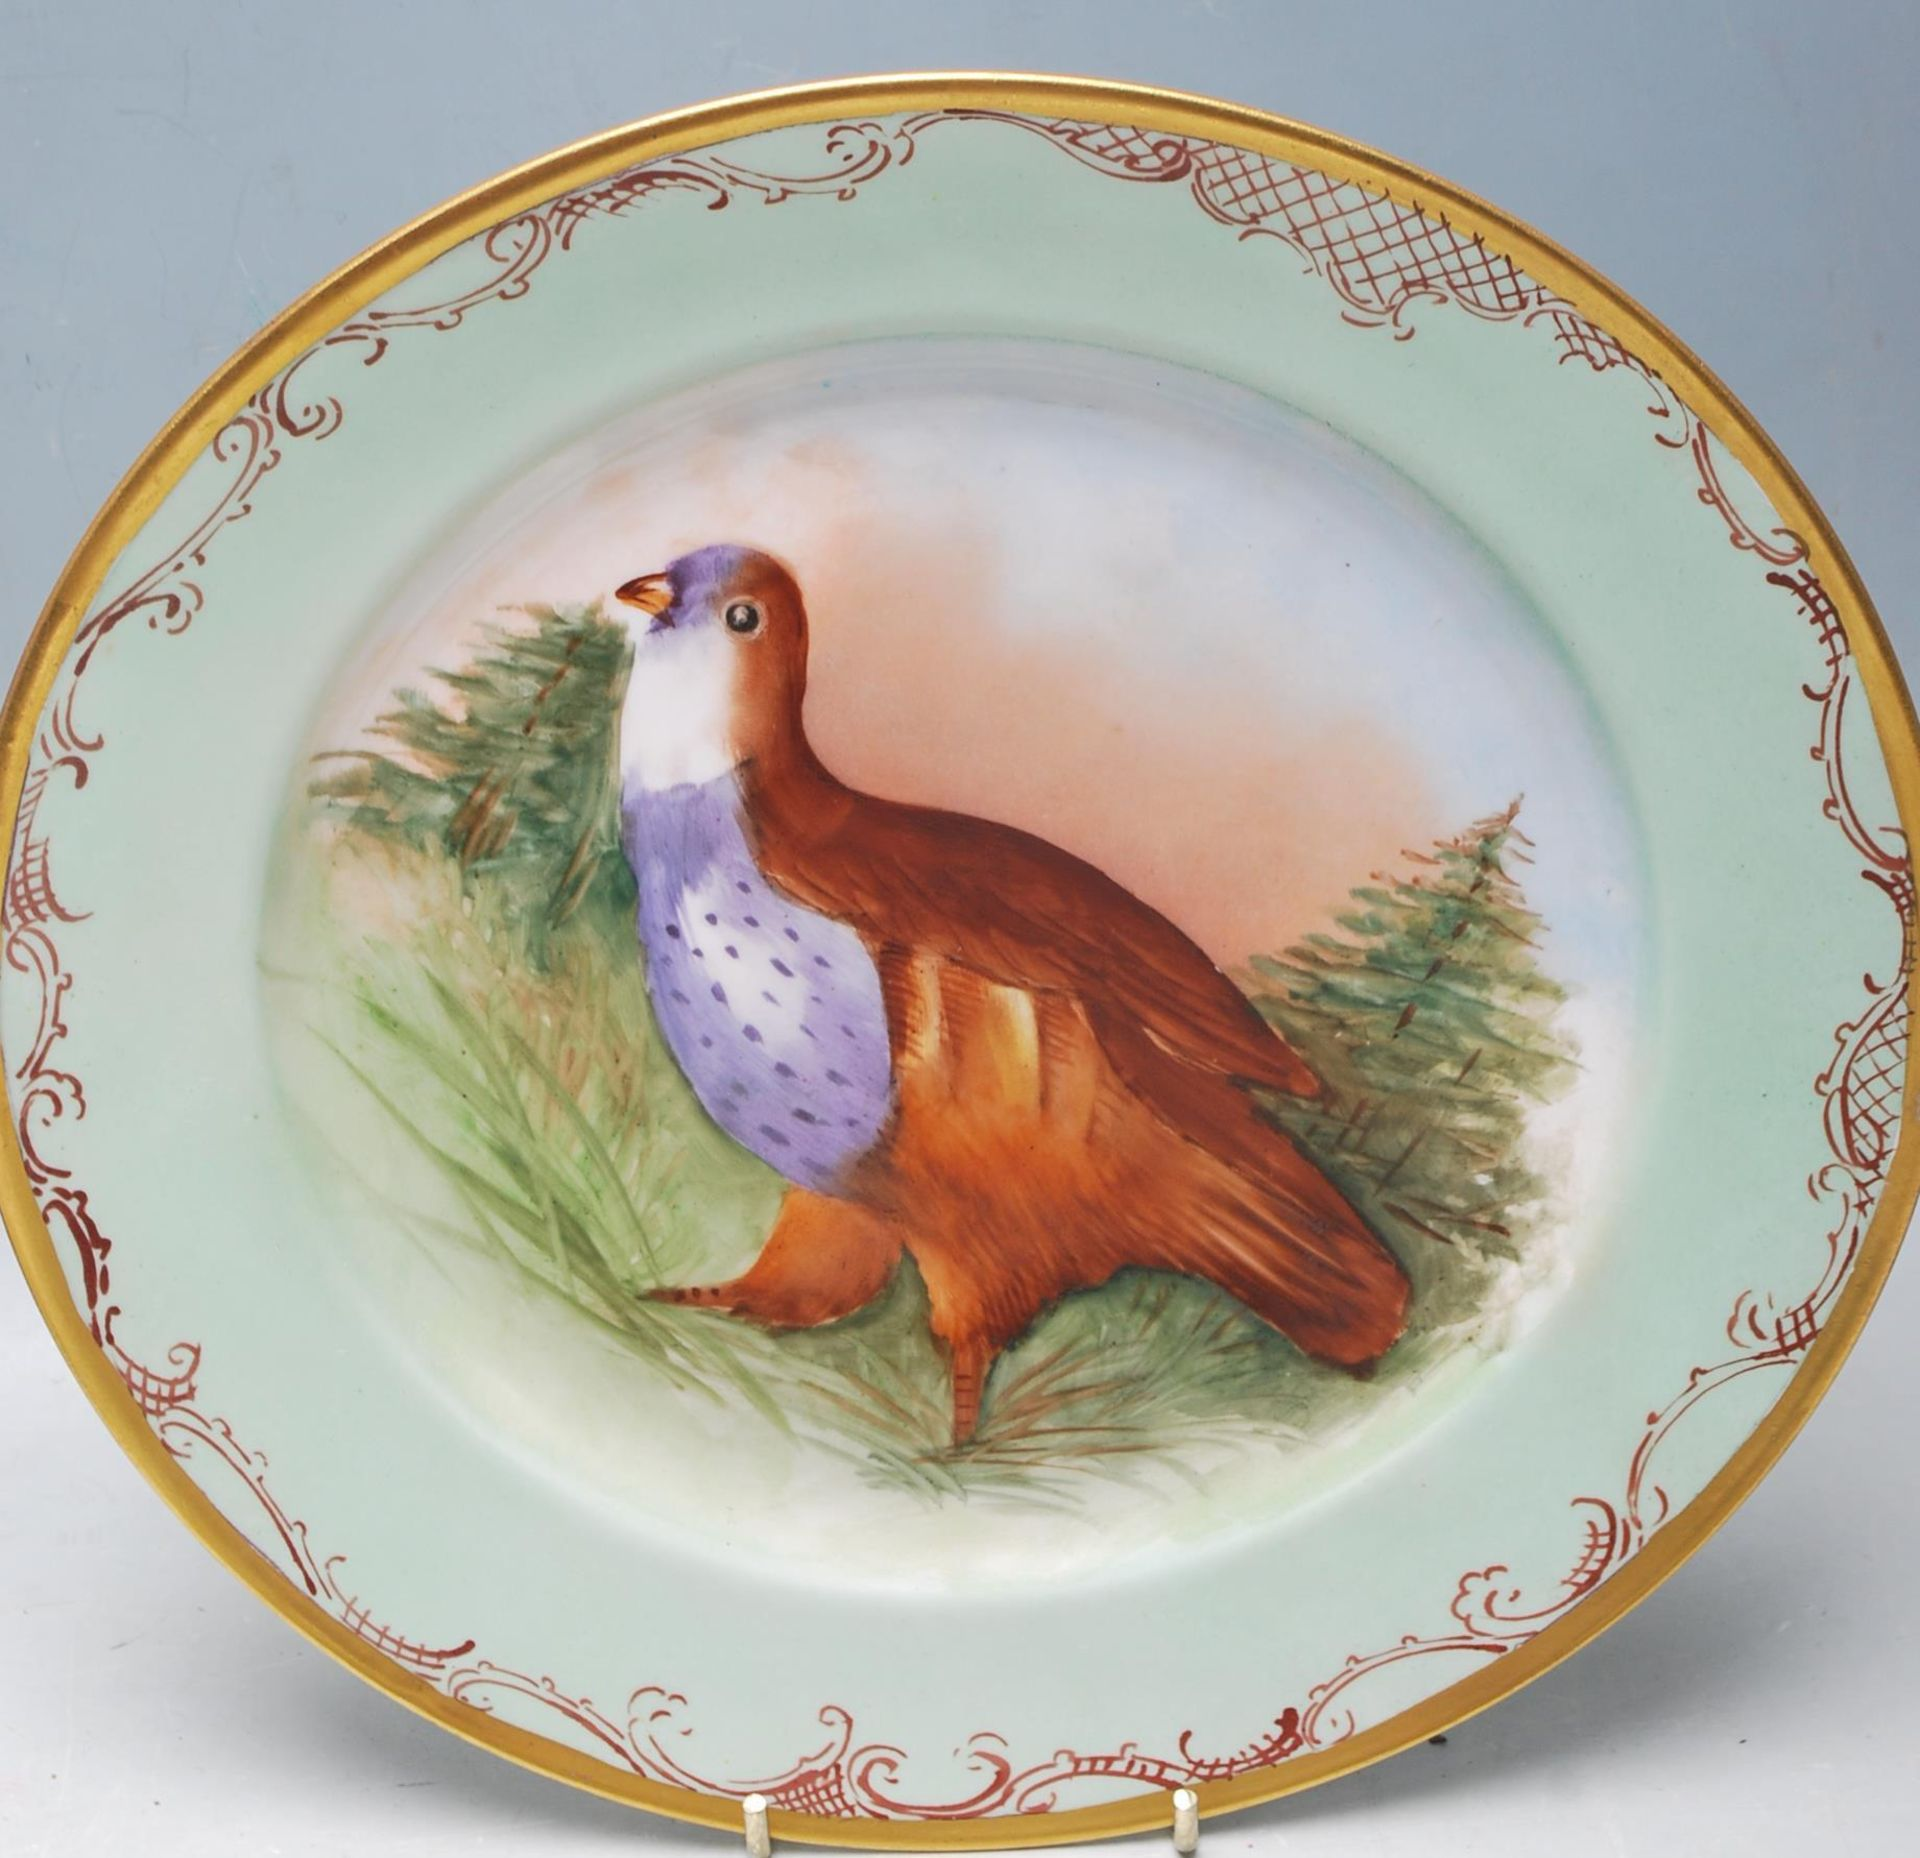 SET 4 JEAN POUYAT LIMOGES GAME BIRD CABINET PLATES - Image 3 of 6